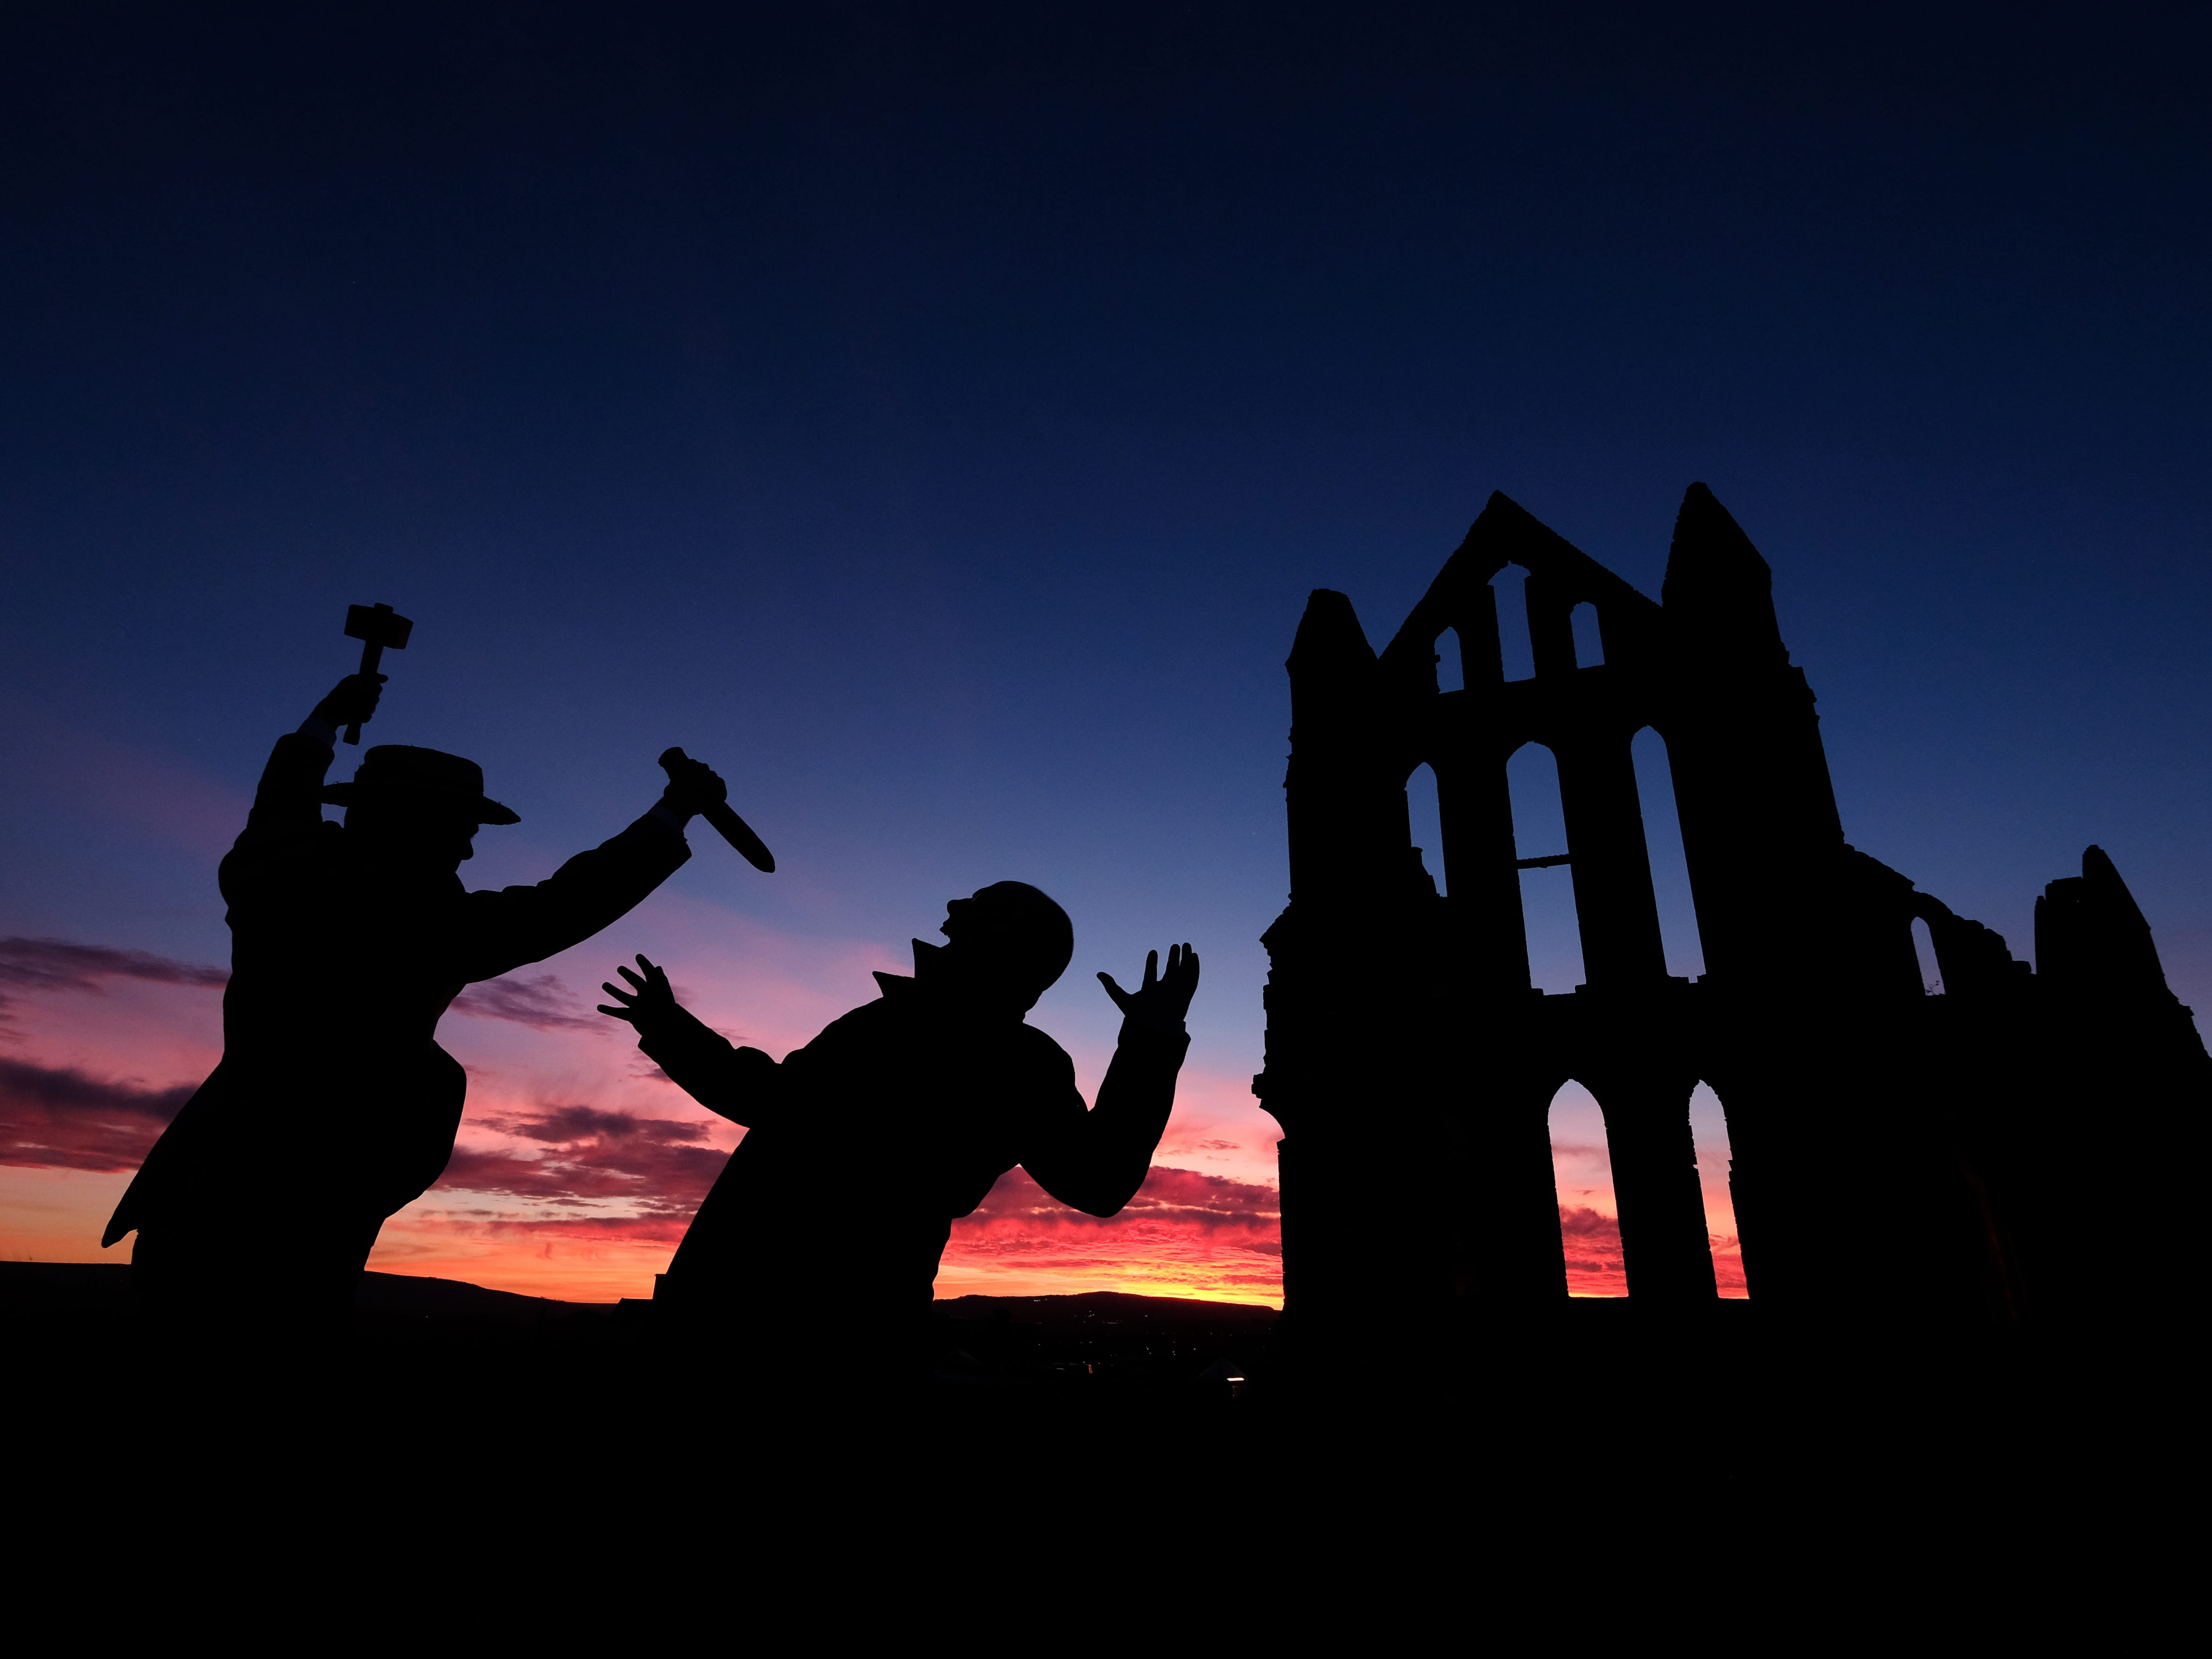 Actors Craig Cowdroy (L) and Richard Hollick pose for pictures during a press evening ahead of a light display illuminating the historic Whitby Abbey on October 24, 2018 in Whitby, England. The abbey will be illuminated over Halloween Week and visitors will be able to experience the site after dark and wander through the dramatic ruins of the abbey famously noted for being the inspiration behind Bram Stokers Dracula. The famous Benedictine abbey sits on East cliff in the Yorkshire seaside town in a commanding position overlooking the North Sea.